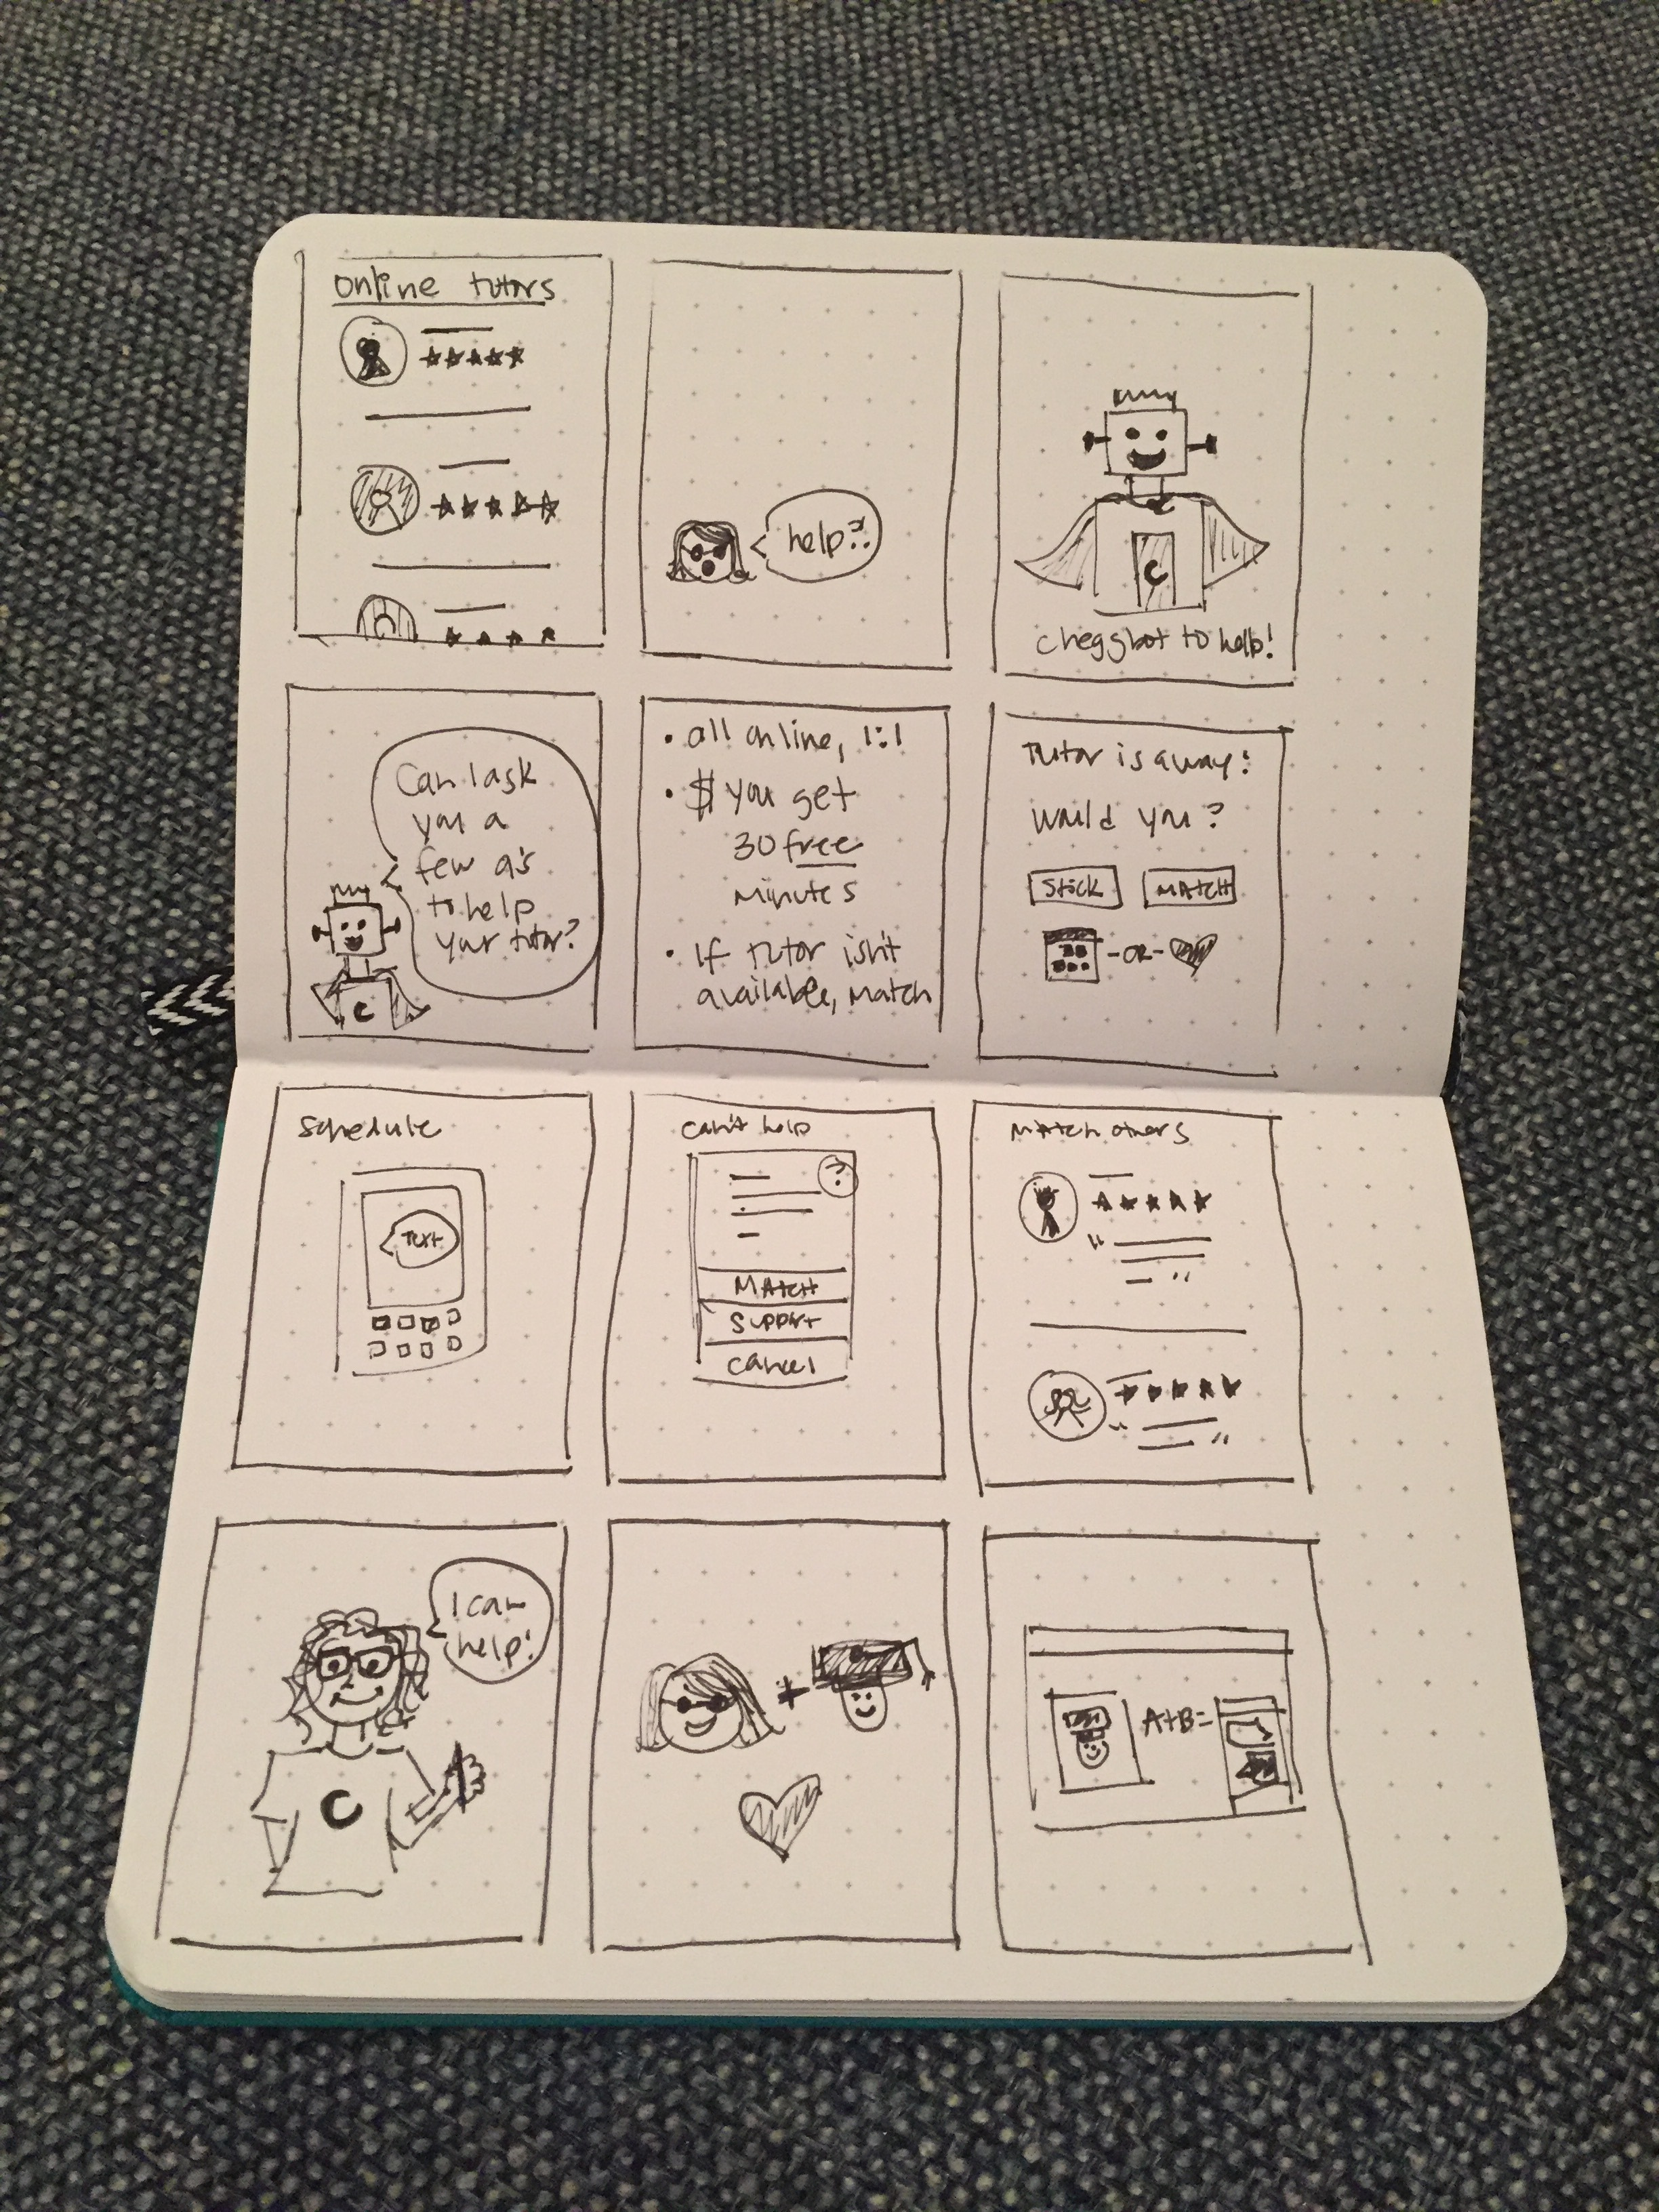 storyboard - Laid out the story of a chatbot guiding the student to a tutor when they were having trouble connecting to one. This set the foundation for the prototype.